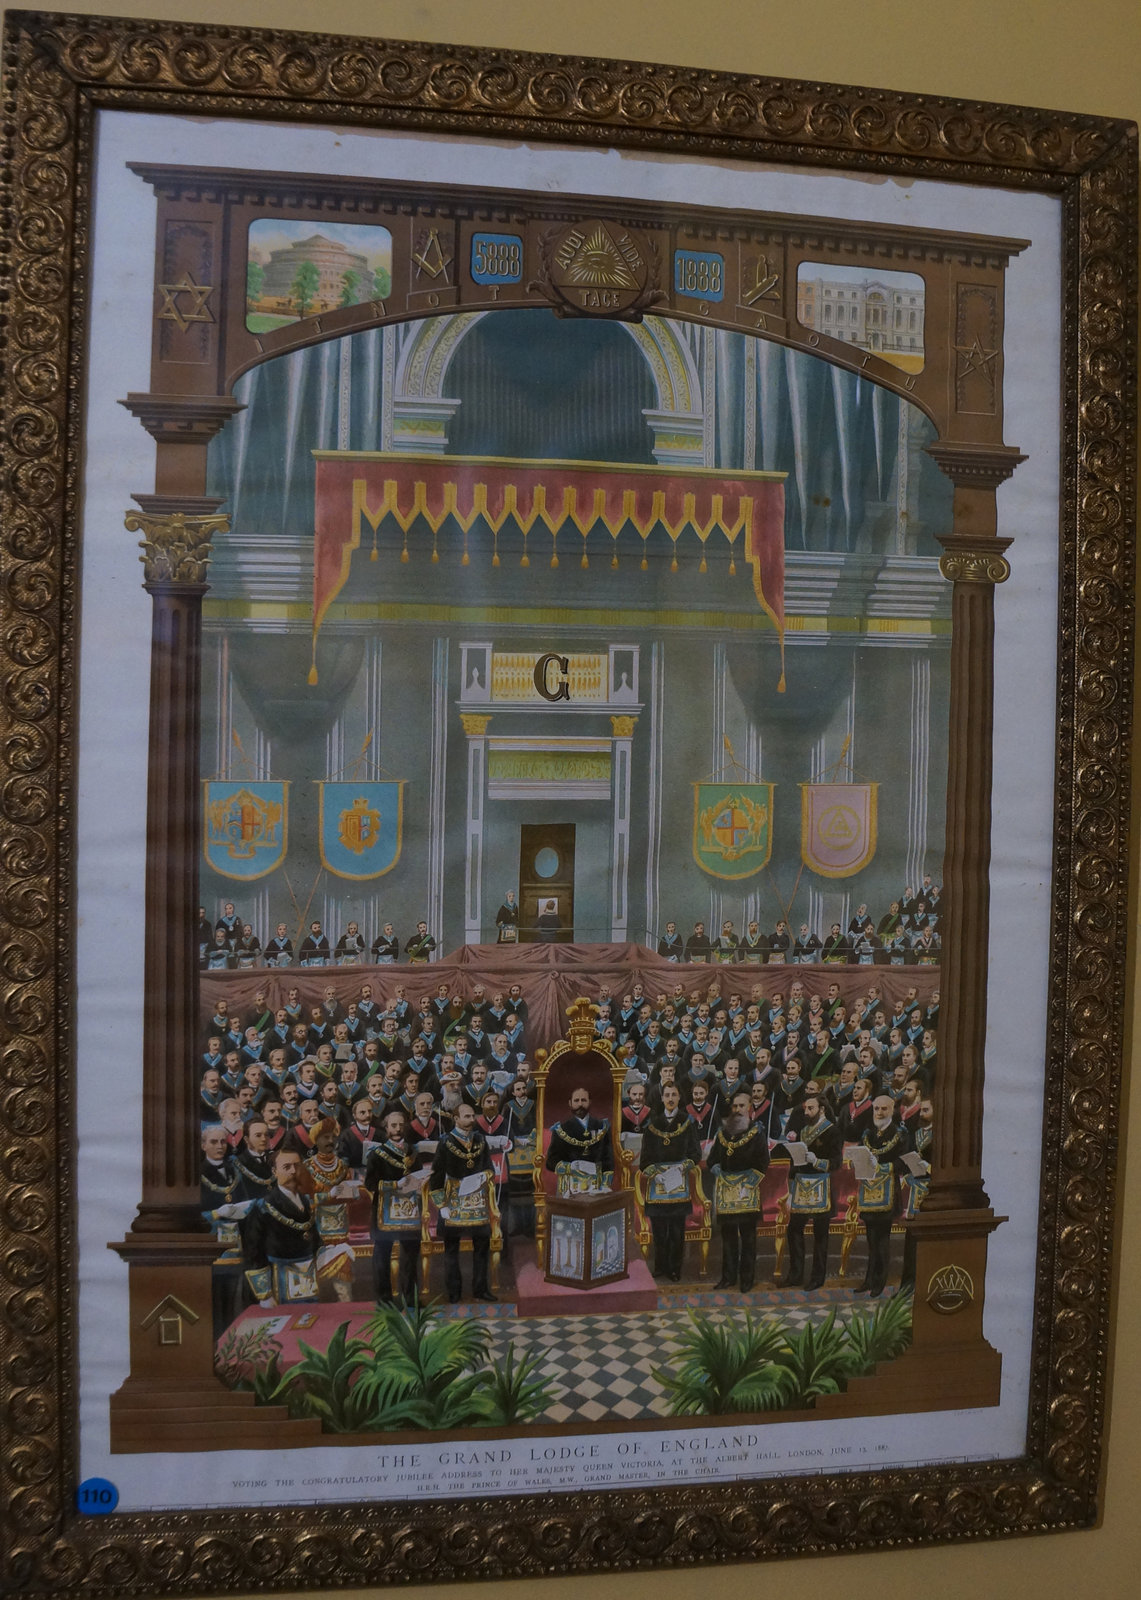 The Grand Lodge of England, 1887